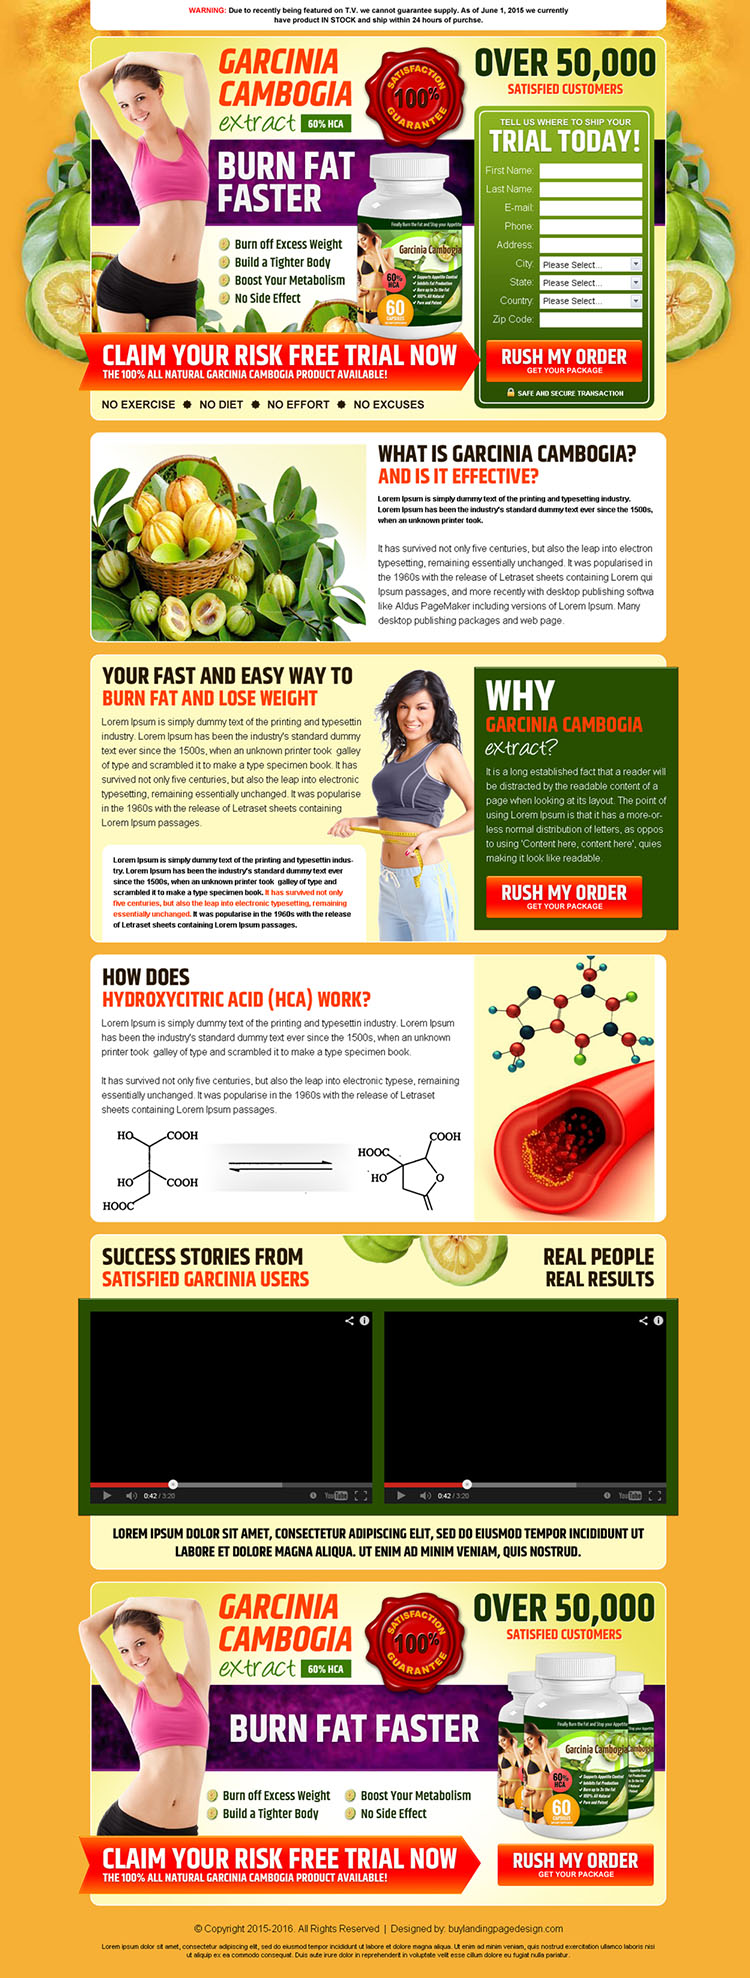 garcinia cambogia risk free trial product selling best converting landing page design https://www.buylandingpagedesign.com/buy/garcinia-cambogia-risk-free-trial-product-selling-best-converting-landing-page-design/1788